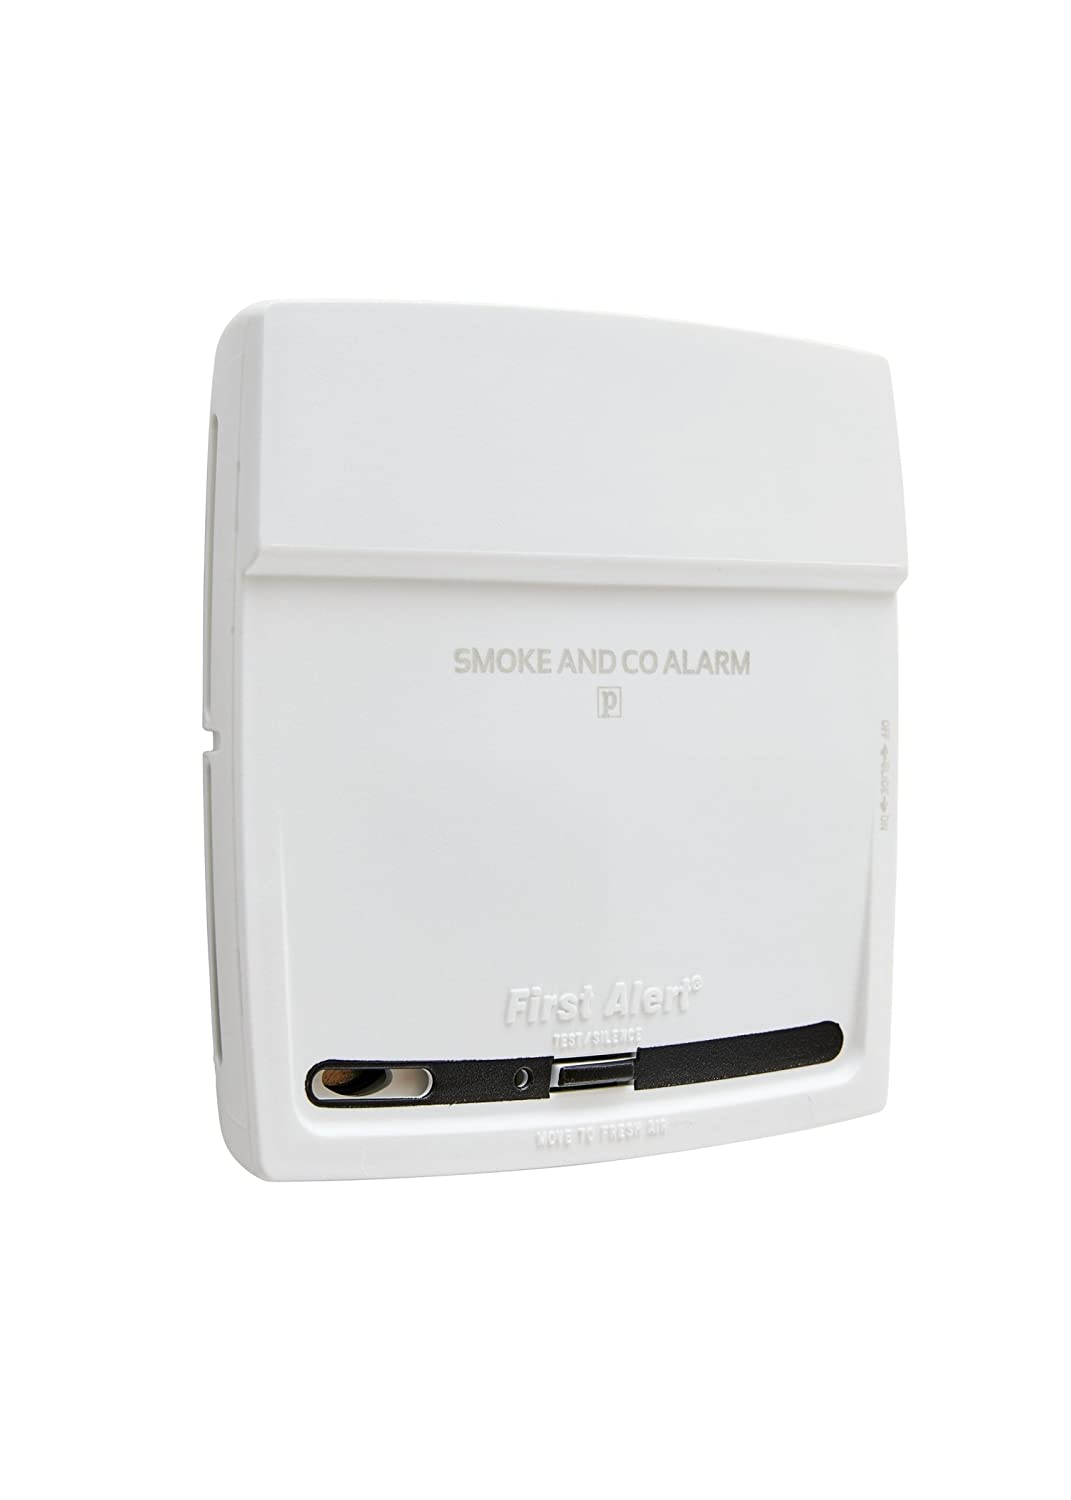 First Alert PC900 Battery Operated Combination Photoelectric Smoke and Carbon Monoxide Alarm